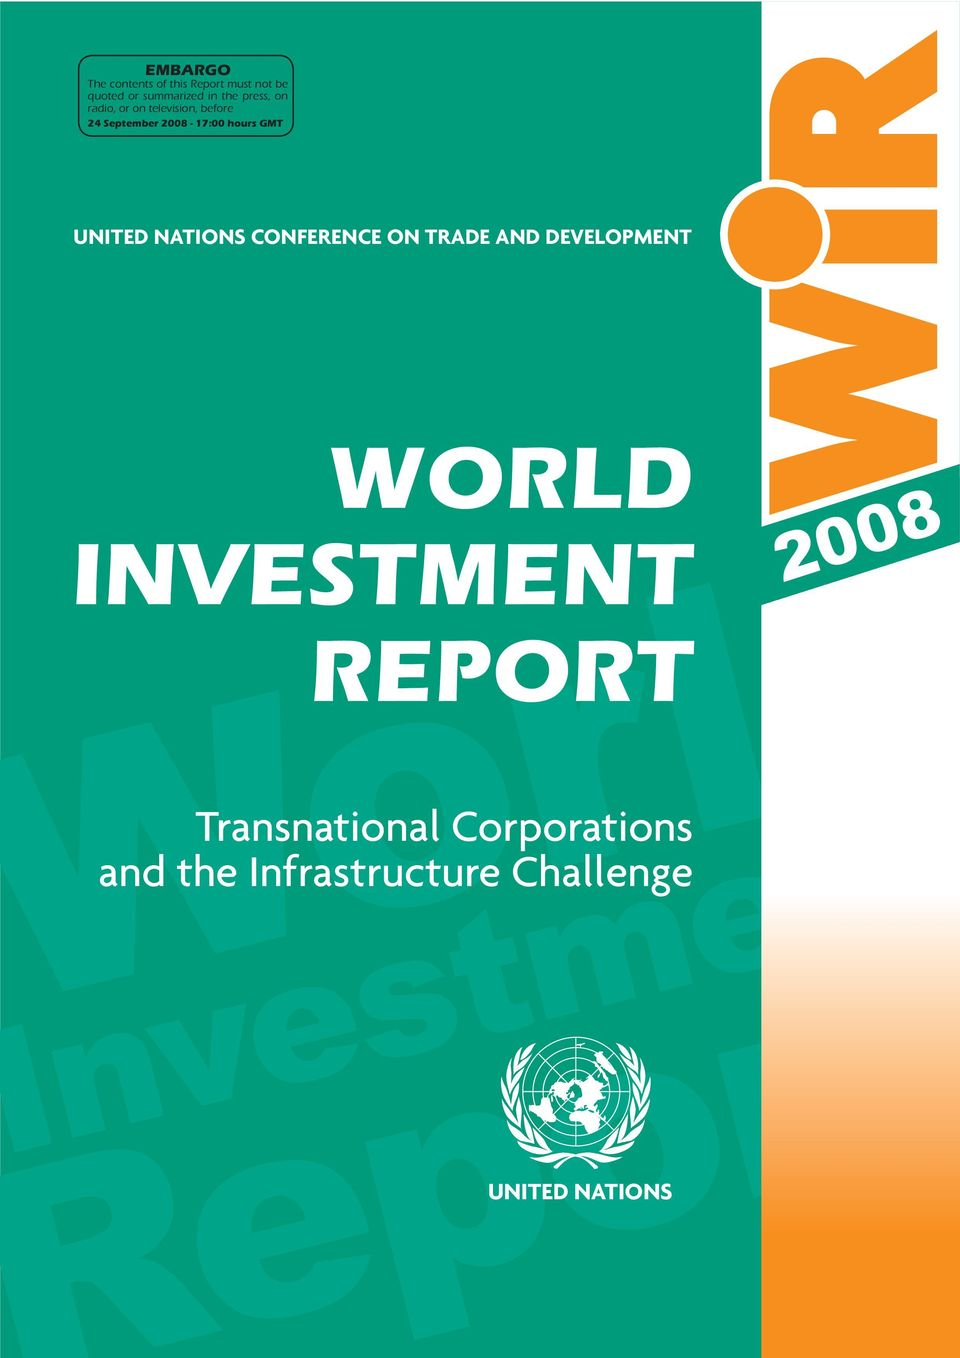 NATIONS CONFERENCE ON TRADE AND DEVELOPMENT WORLD INVESTMENT REPORT 2008 World